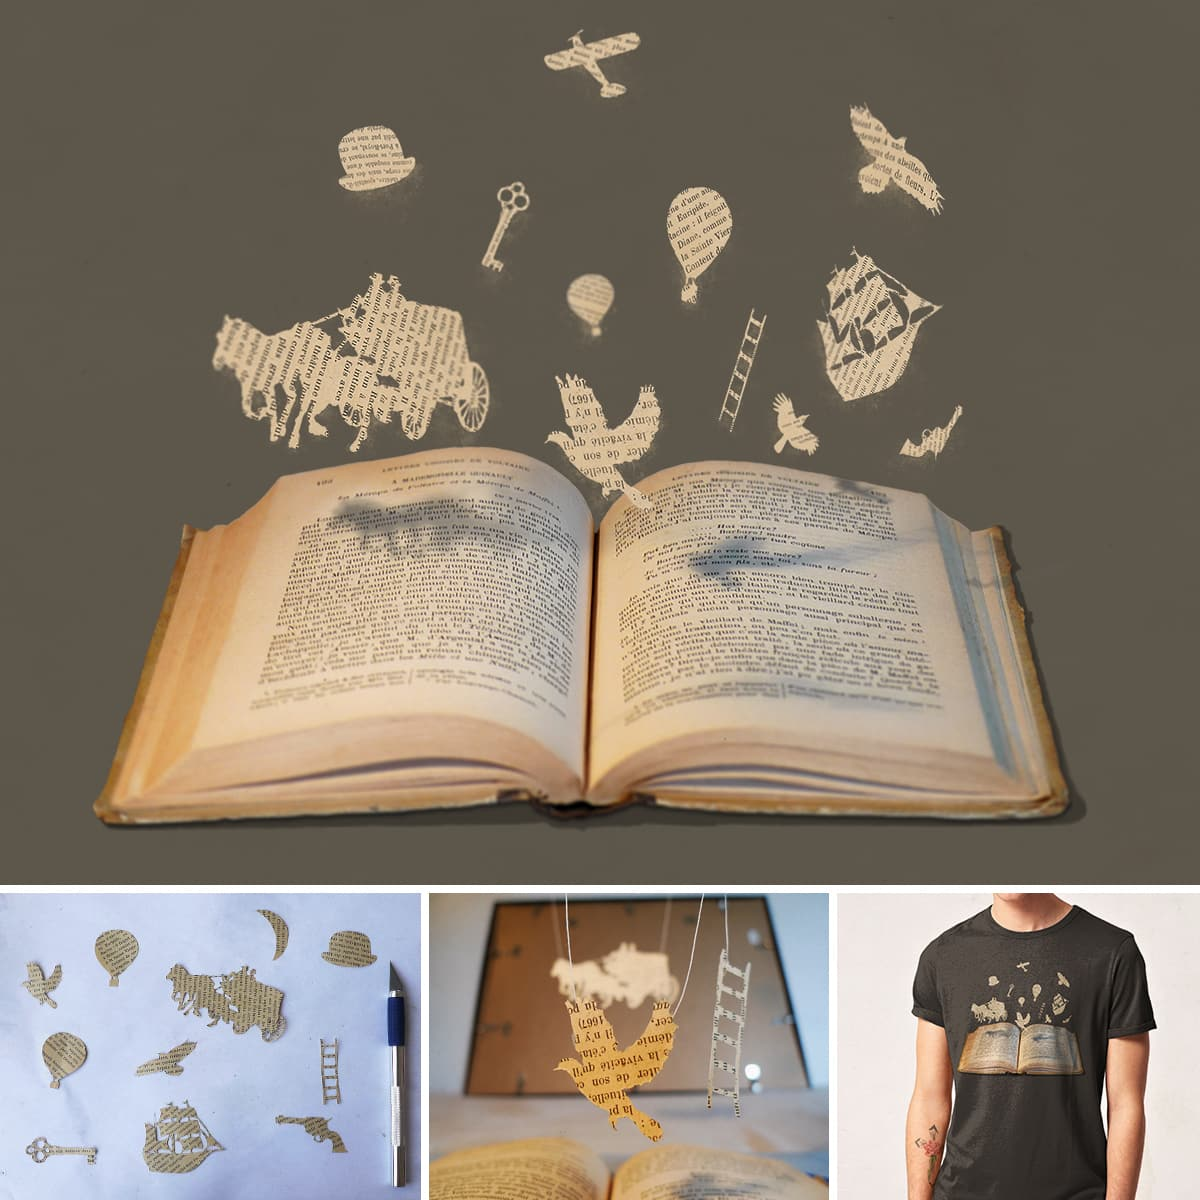 Words Take Flight by speakerine on Threadless